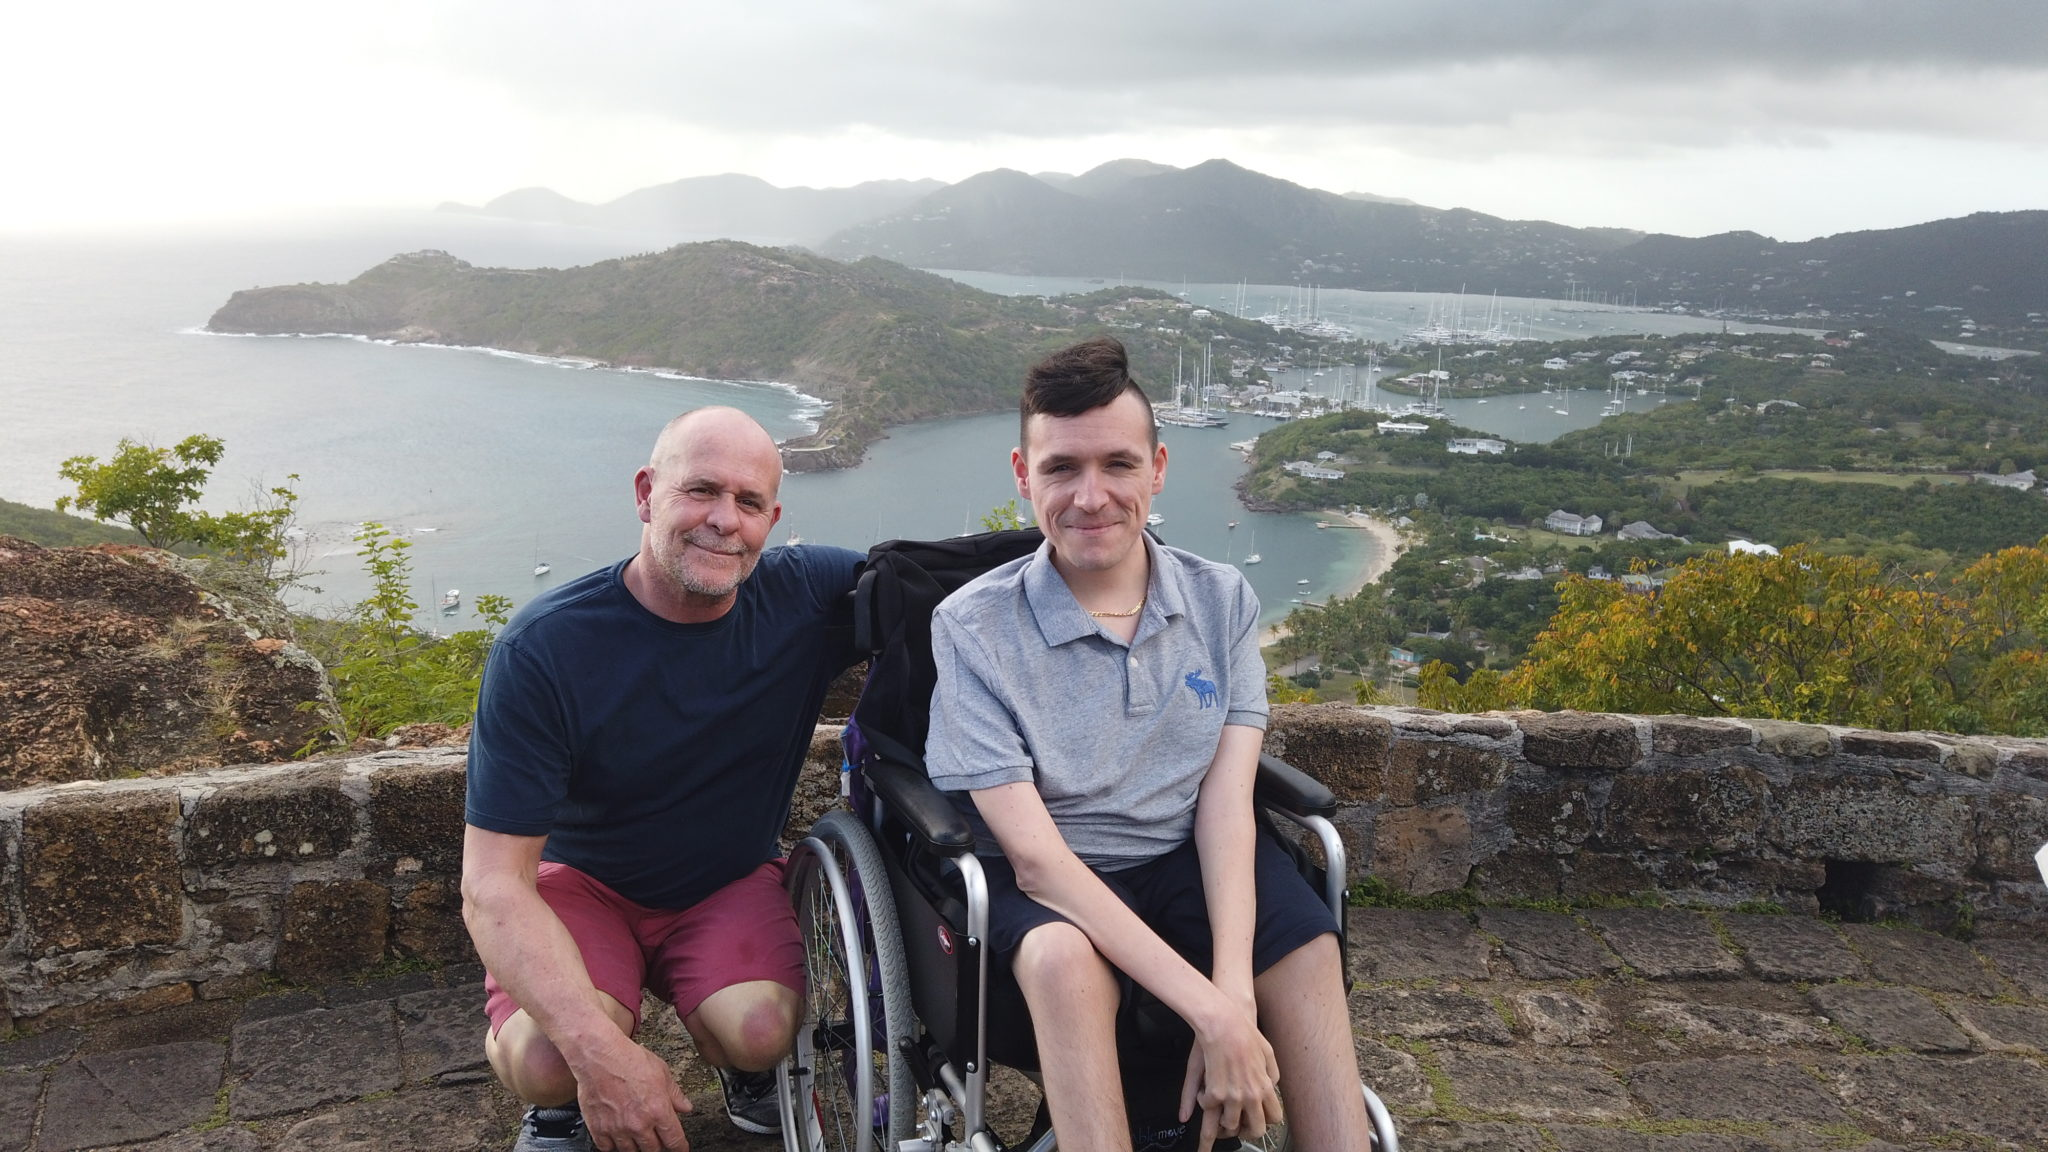 Josh's father crouched with his arm around Josh, who is sat in his manual wheelchair. Both facing the camera. In the background is Shirley Heights, with mountains, sea and harbour in the background with grey sky.